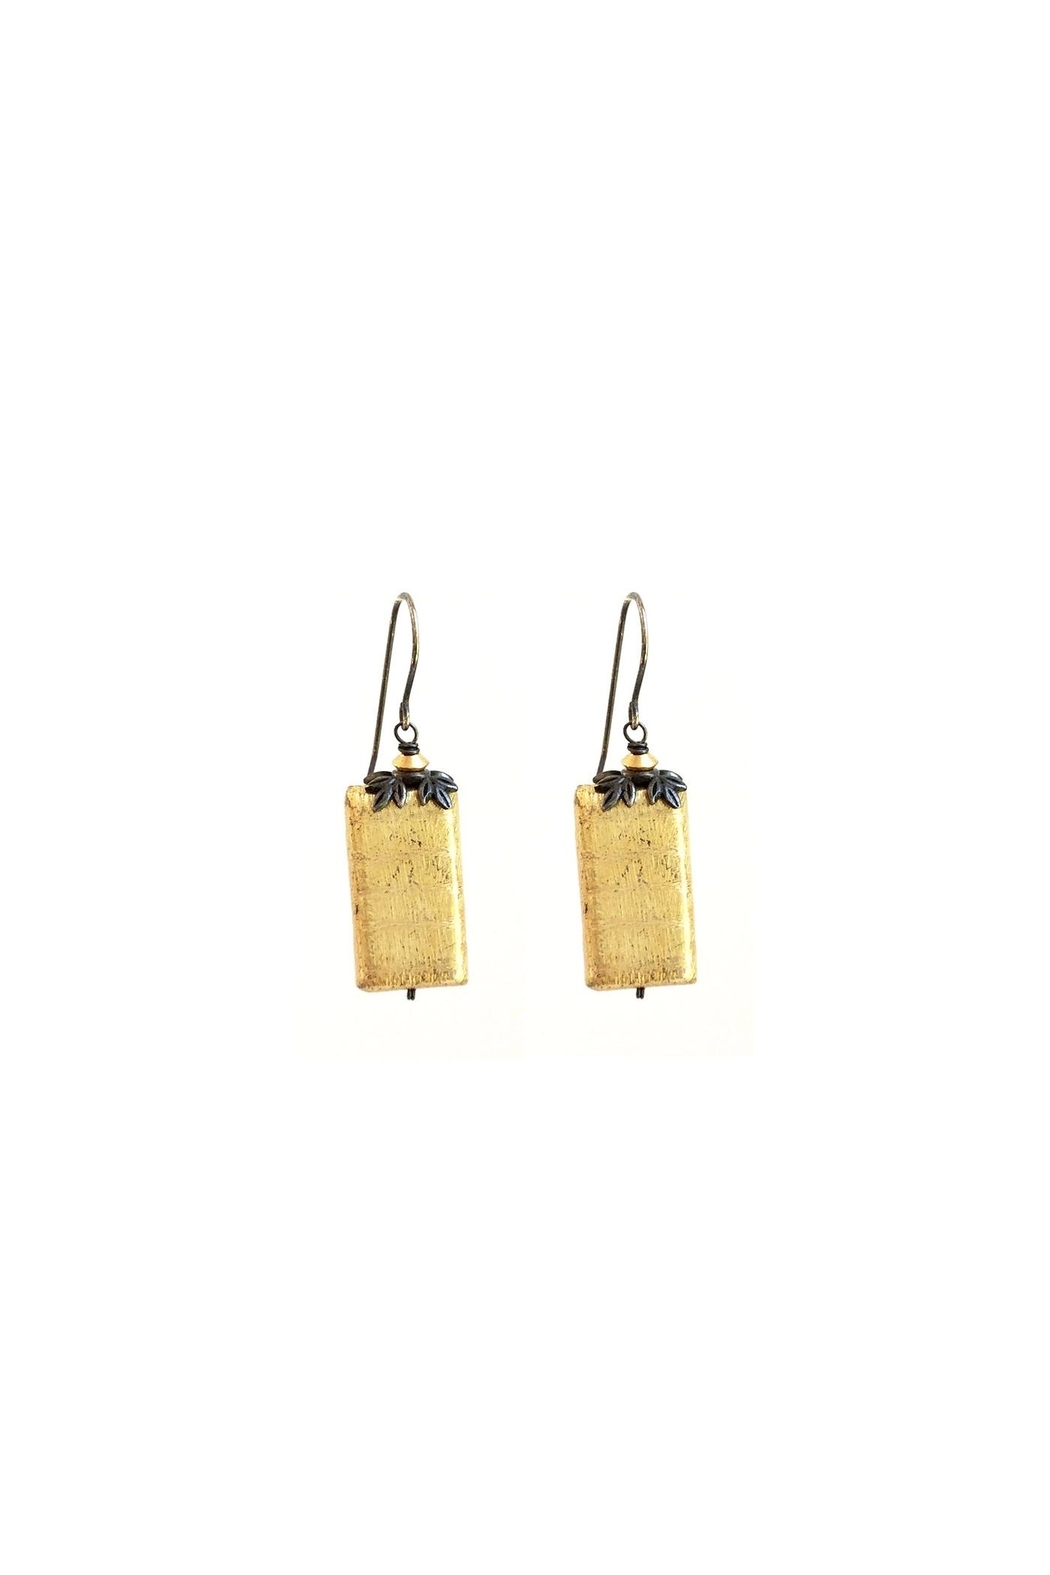 Susan Goodwin Jewelry Gold Rectangle Earrings - Main Image